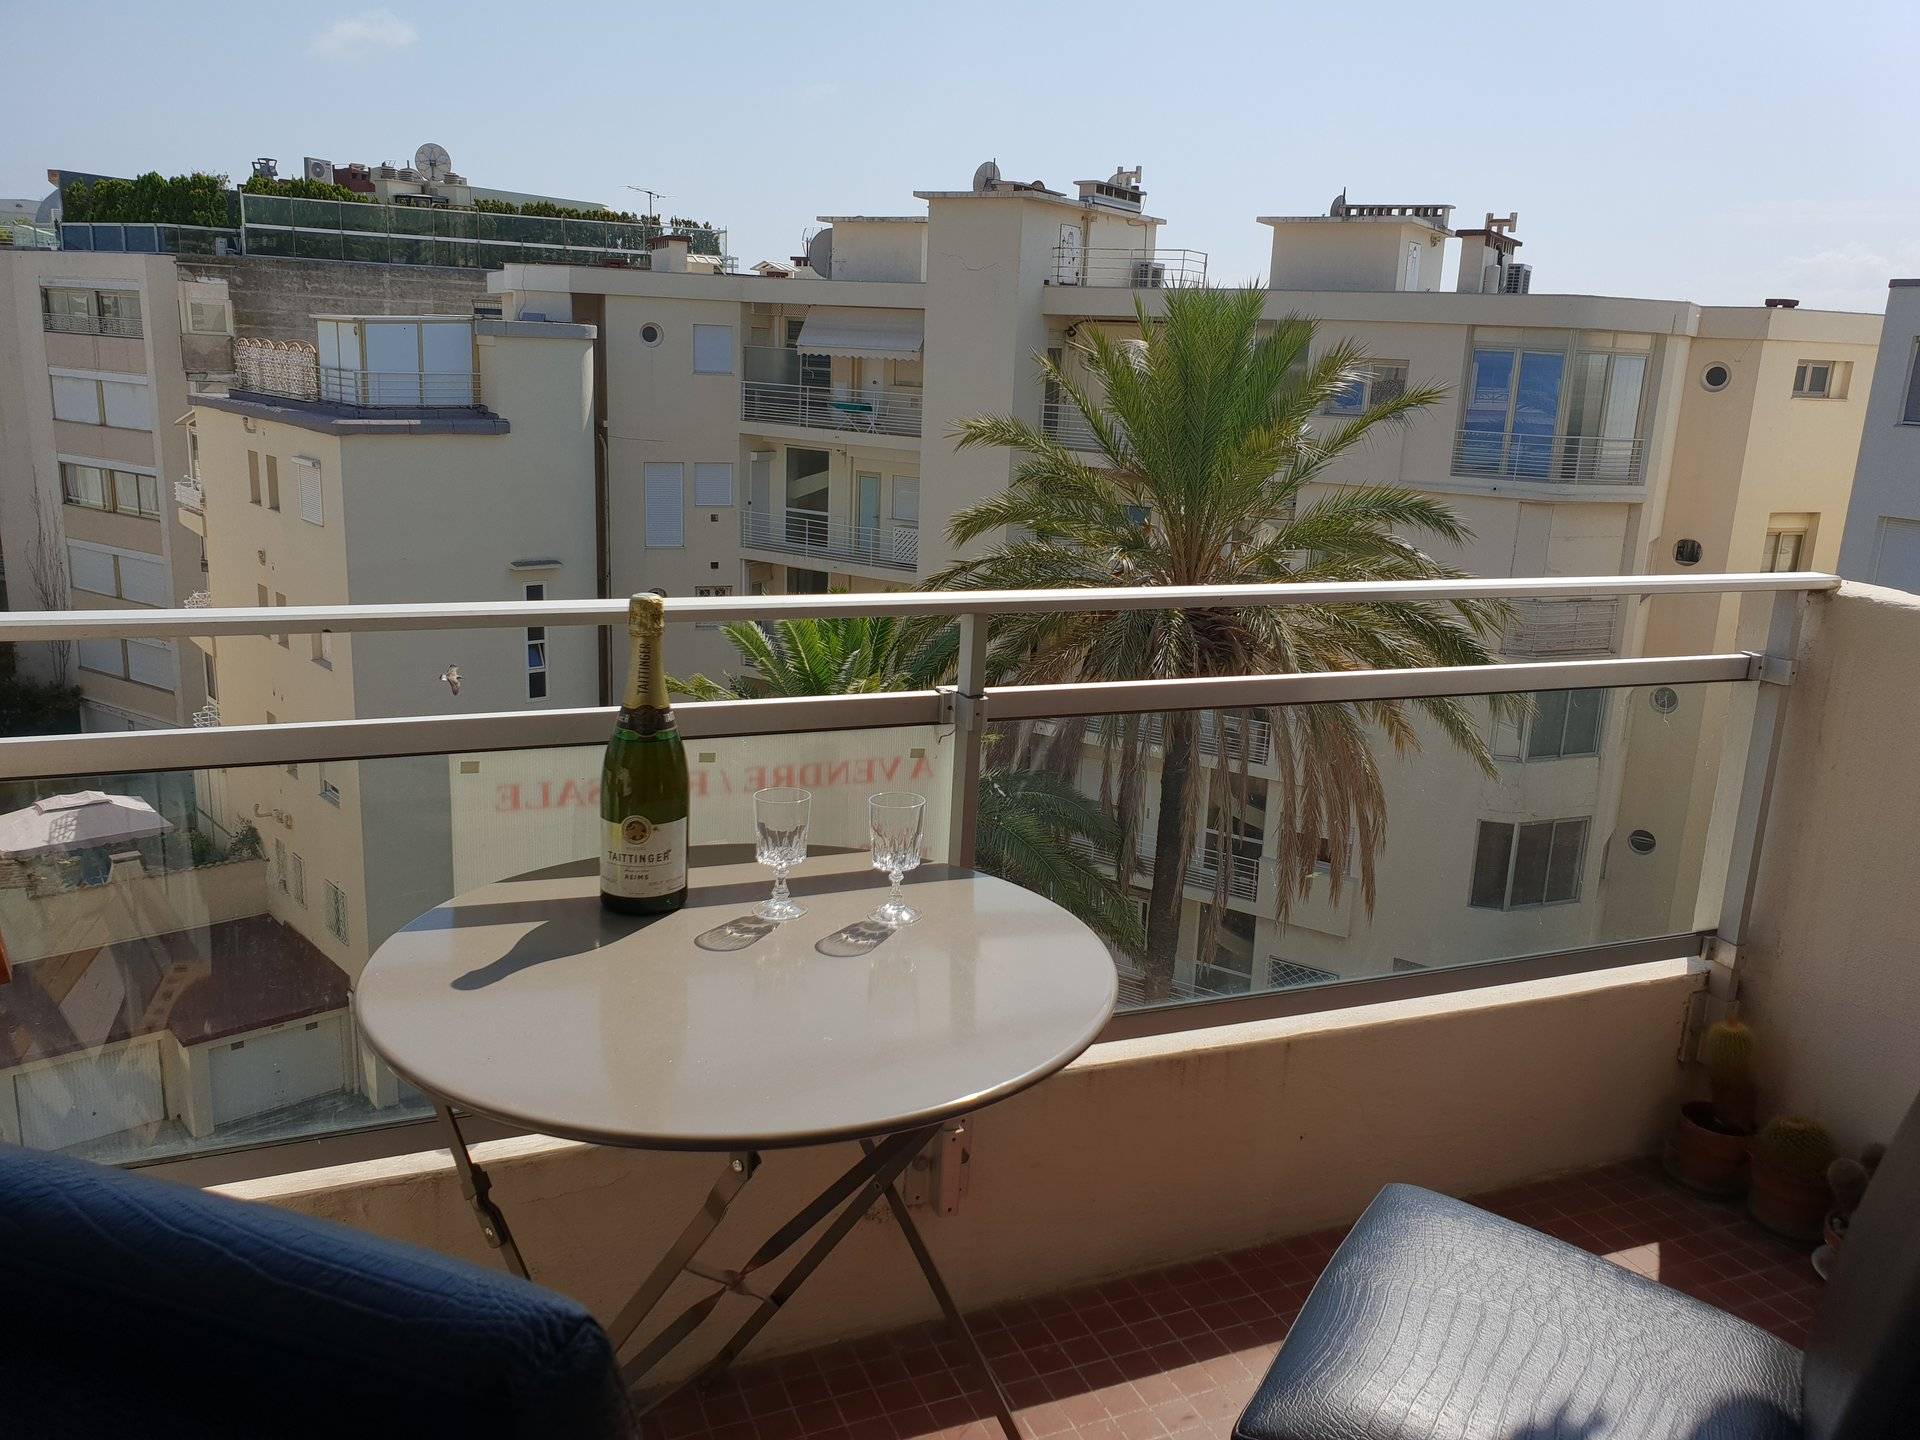 Studio for sale in Palm Beach district of Cannes